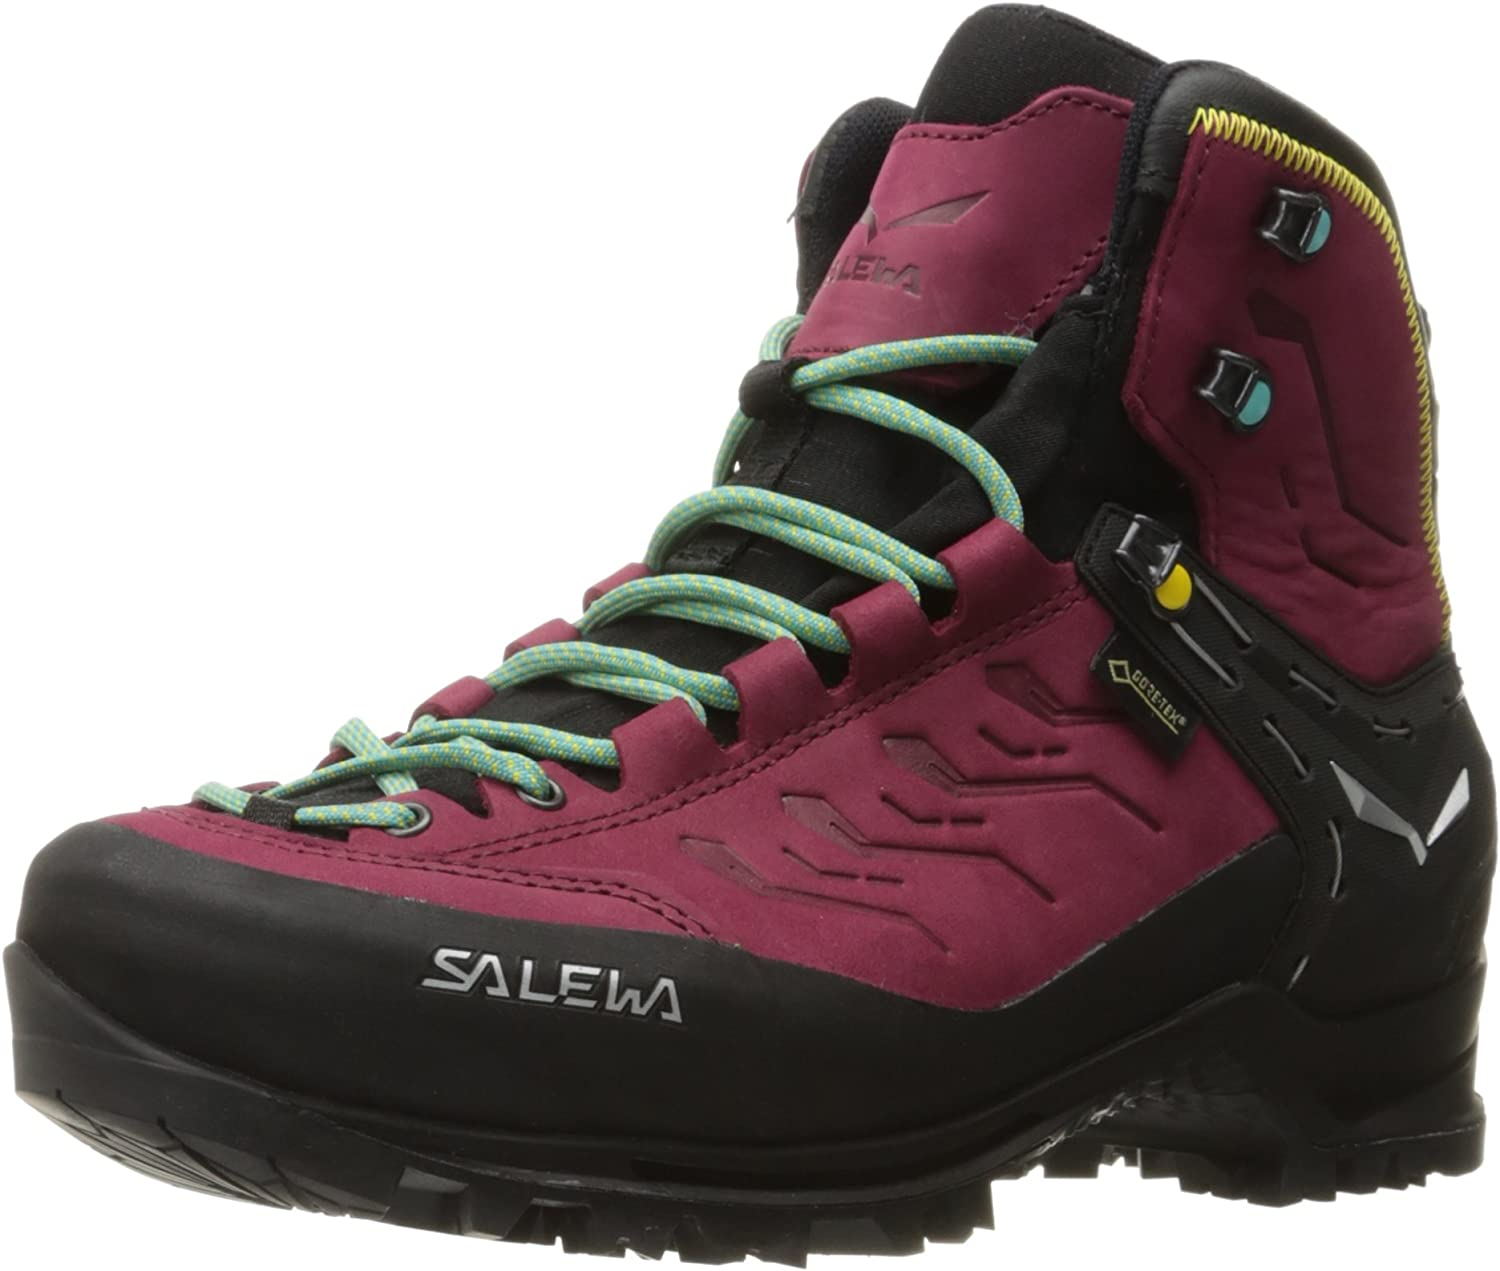 Salewa Women s Rapace GTX Mountaineering Boot Mountaineering, Alpine Climbing, Alpine Trekking Gore-Tex Waterproof Breathable Lining, Crampon Compatible, Durable Nubuck Upper